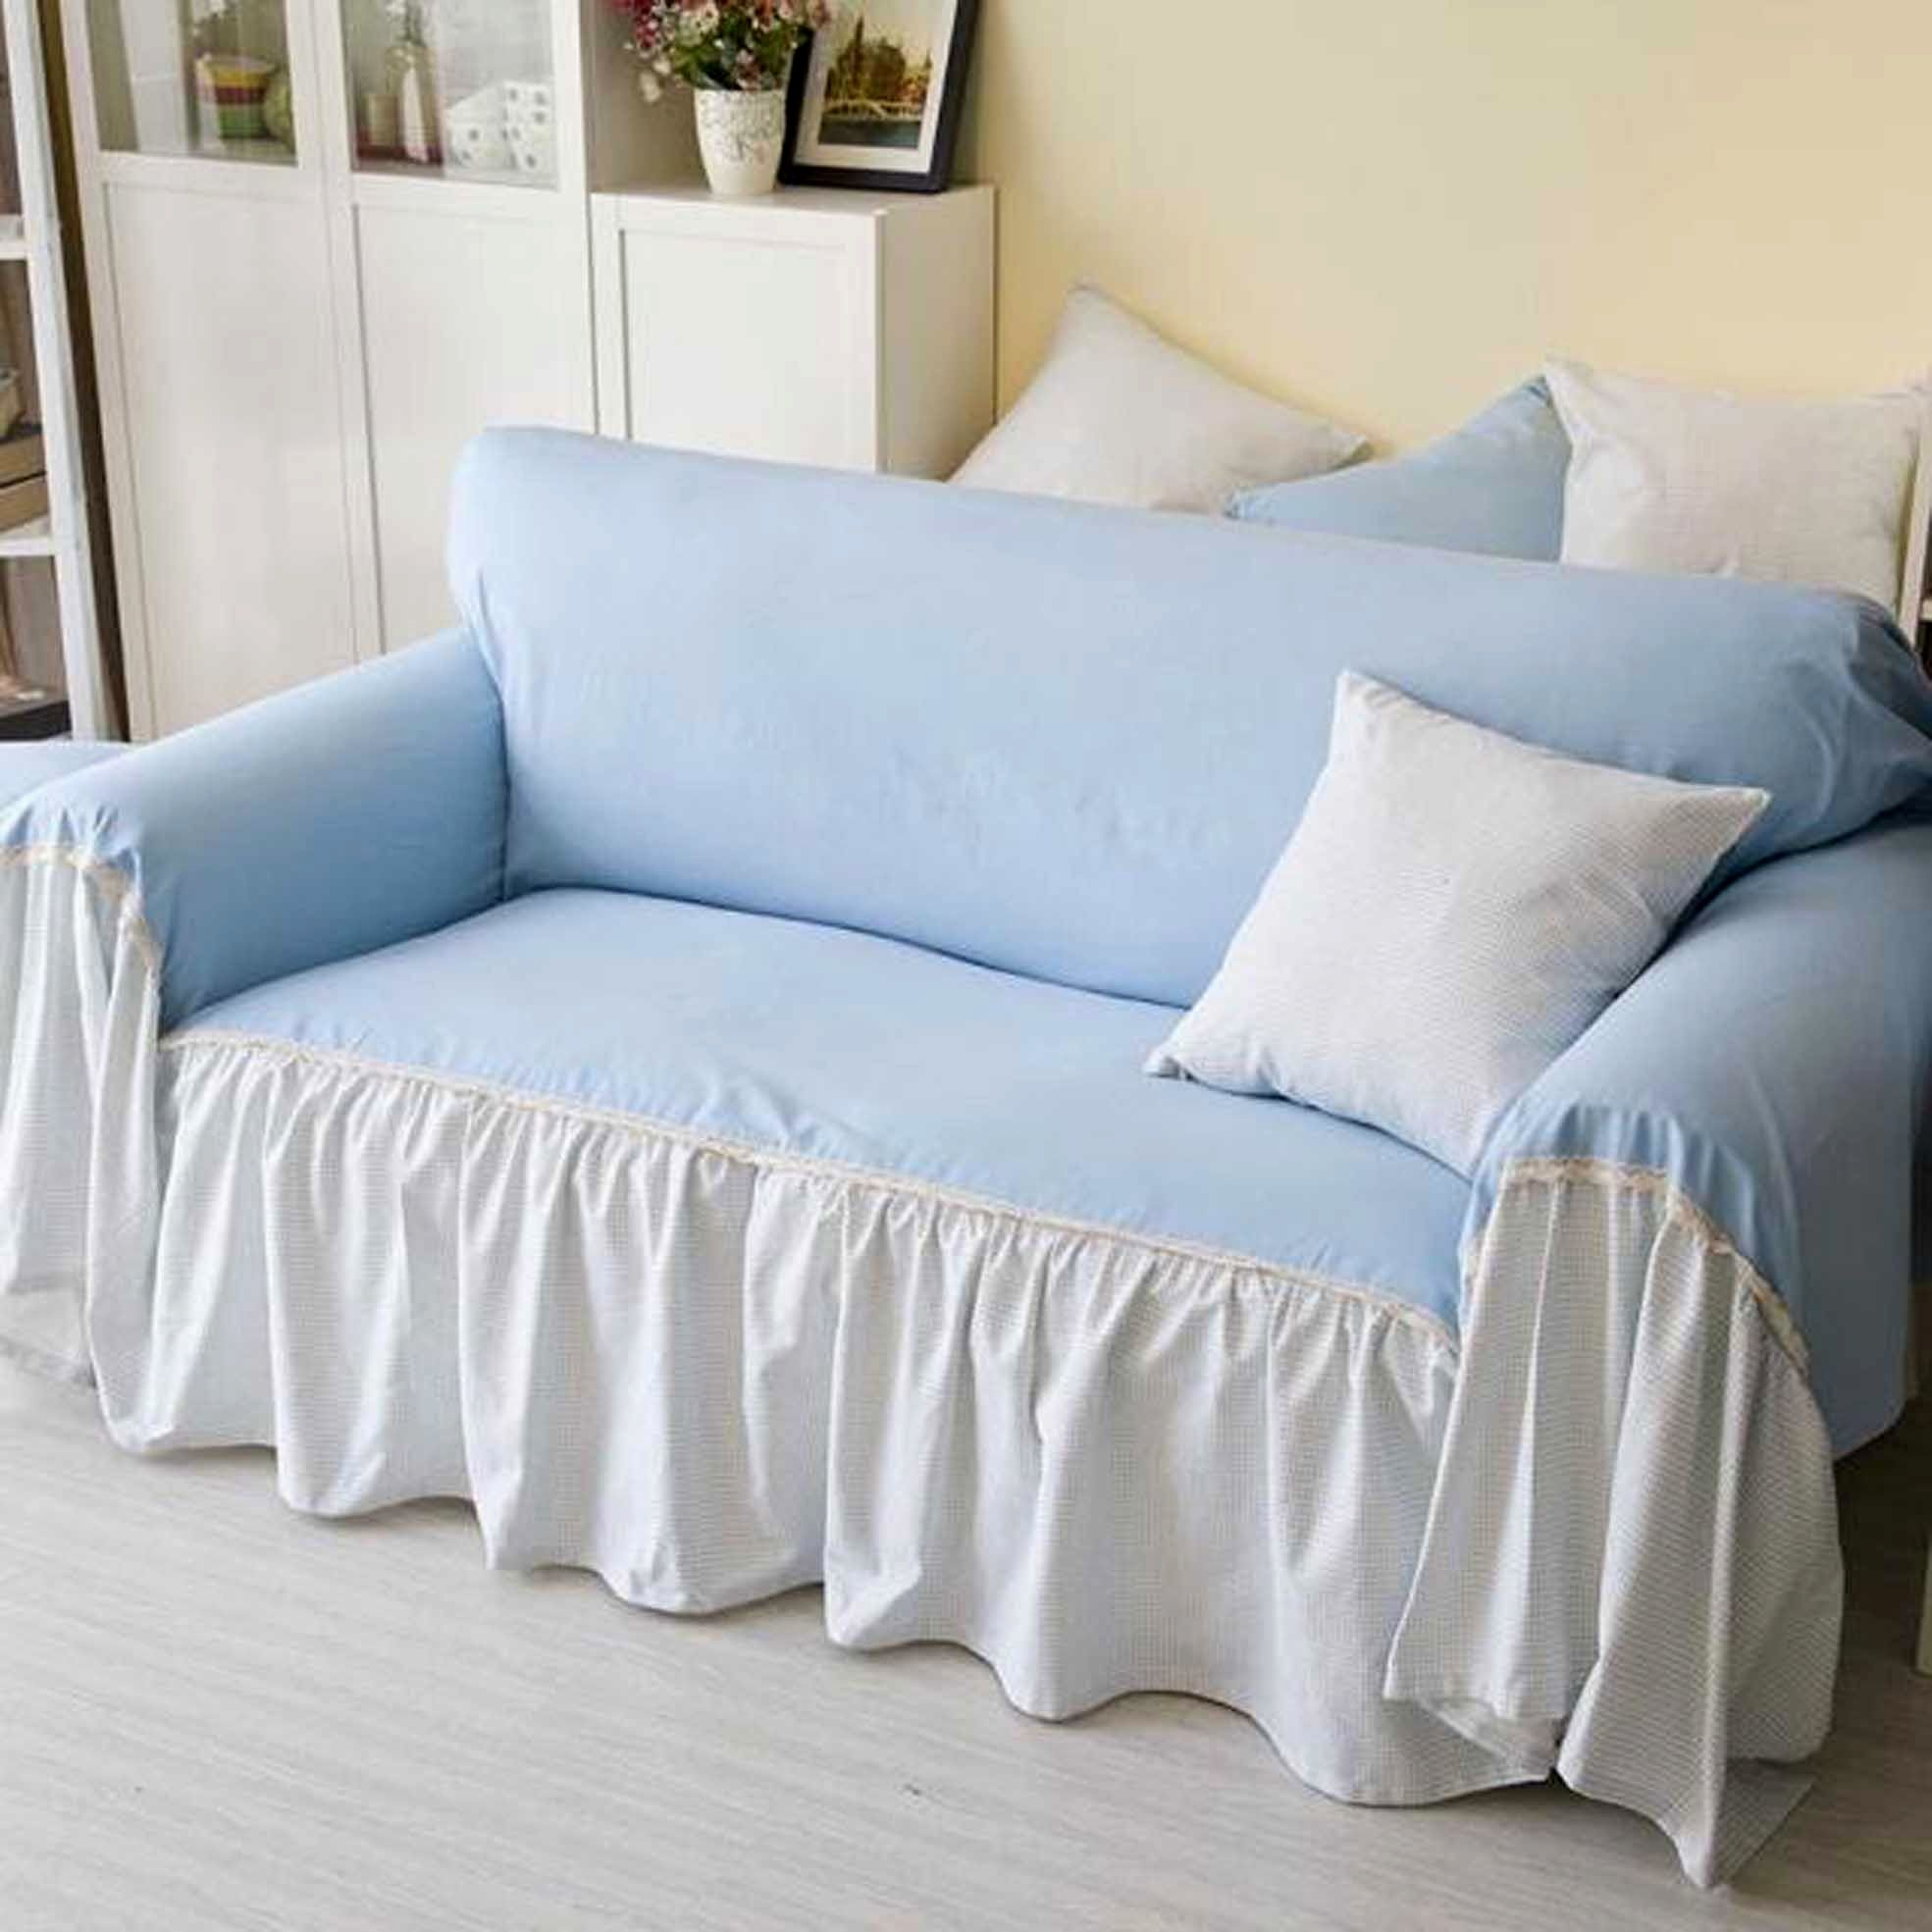 beautiful sectional sofa blue inspiration-Elegant Sectional sofa Blue Picture